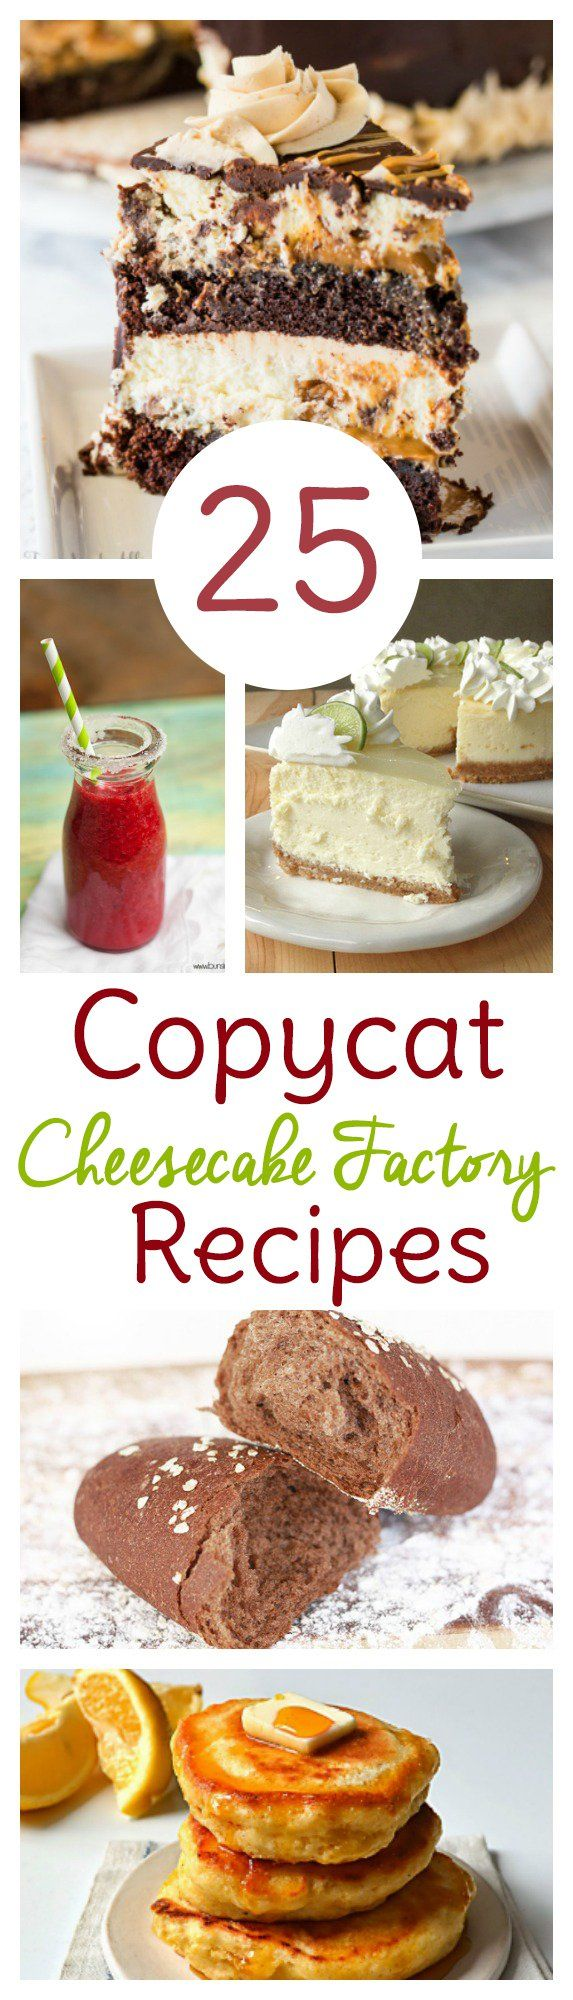 Whether you're looking for Cheesecake Factory restaurant recipes or just a delicious cheesecake, you'll find the Cheesecake Factory copycat recipes here!